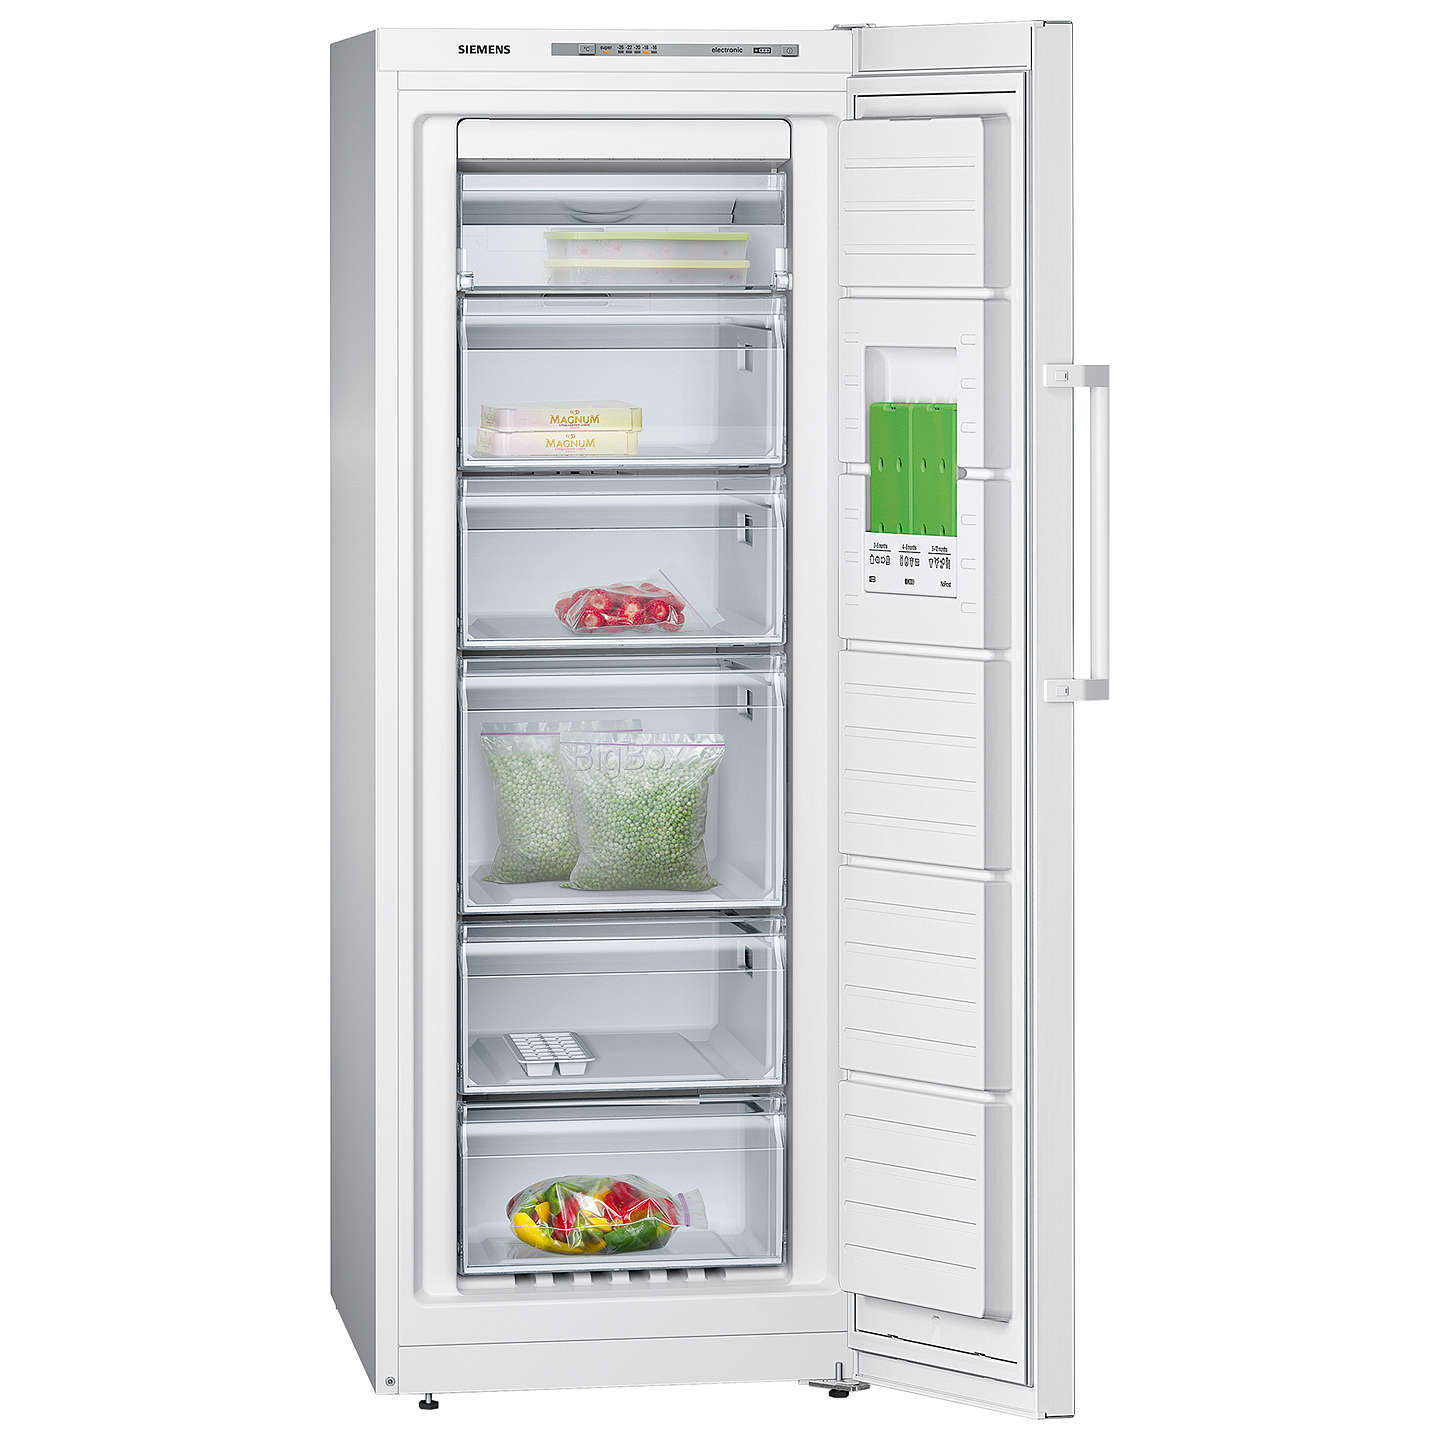 BuySiemens GS29NVW30G Tall Freezer, A++ Energy Rating, 60cm Wide, White Online at johnlewis.com